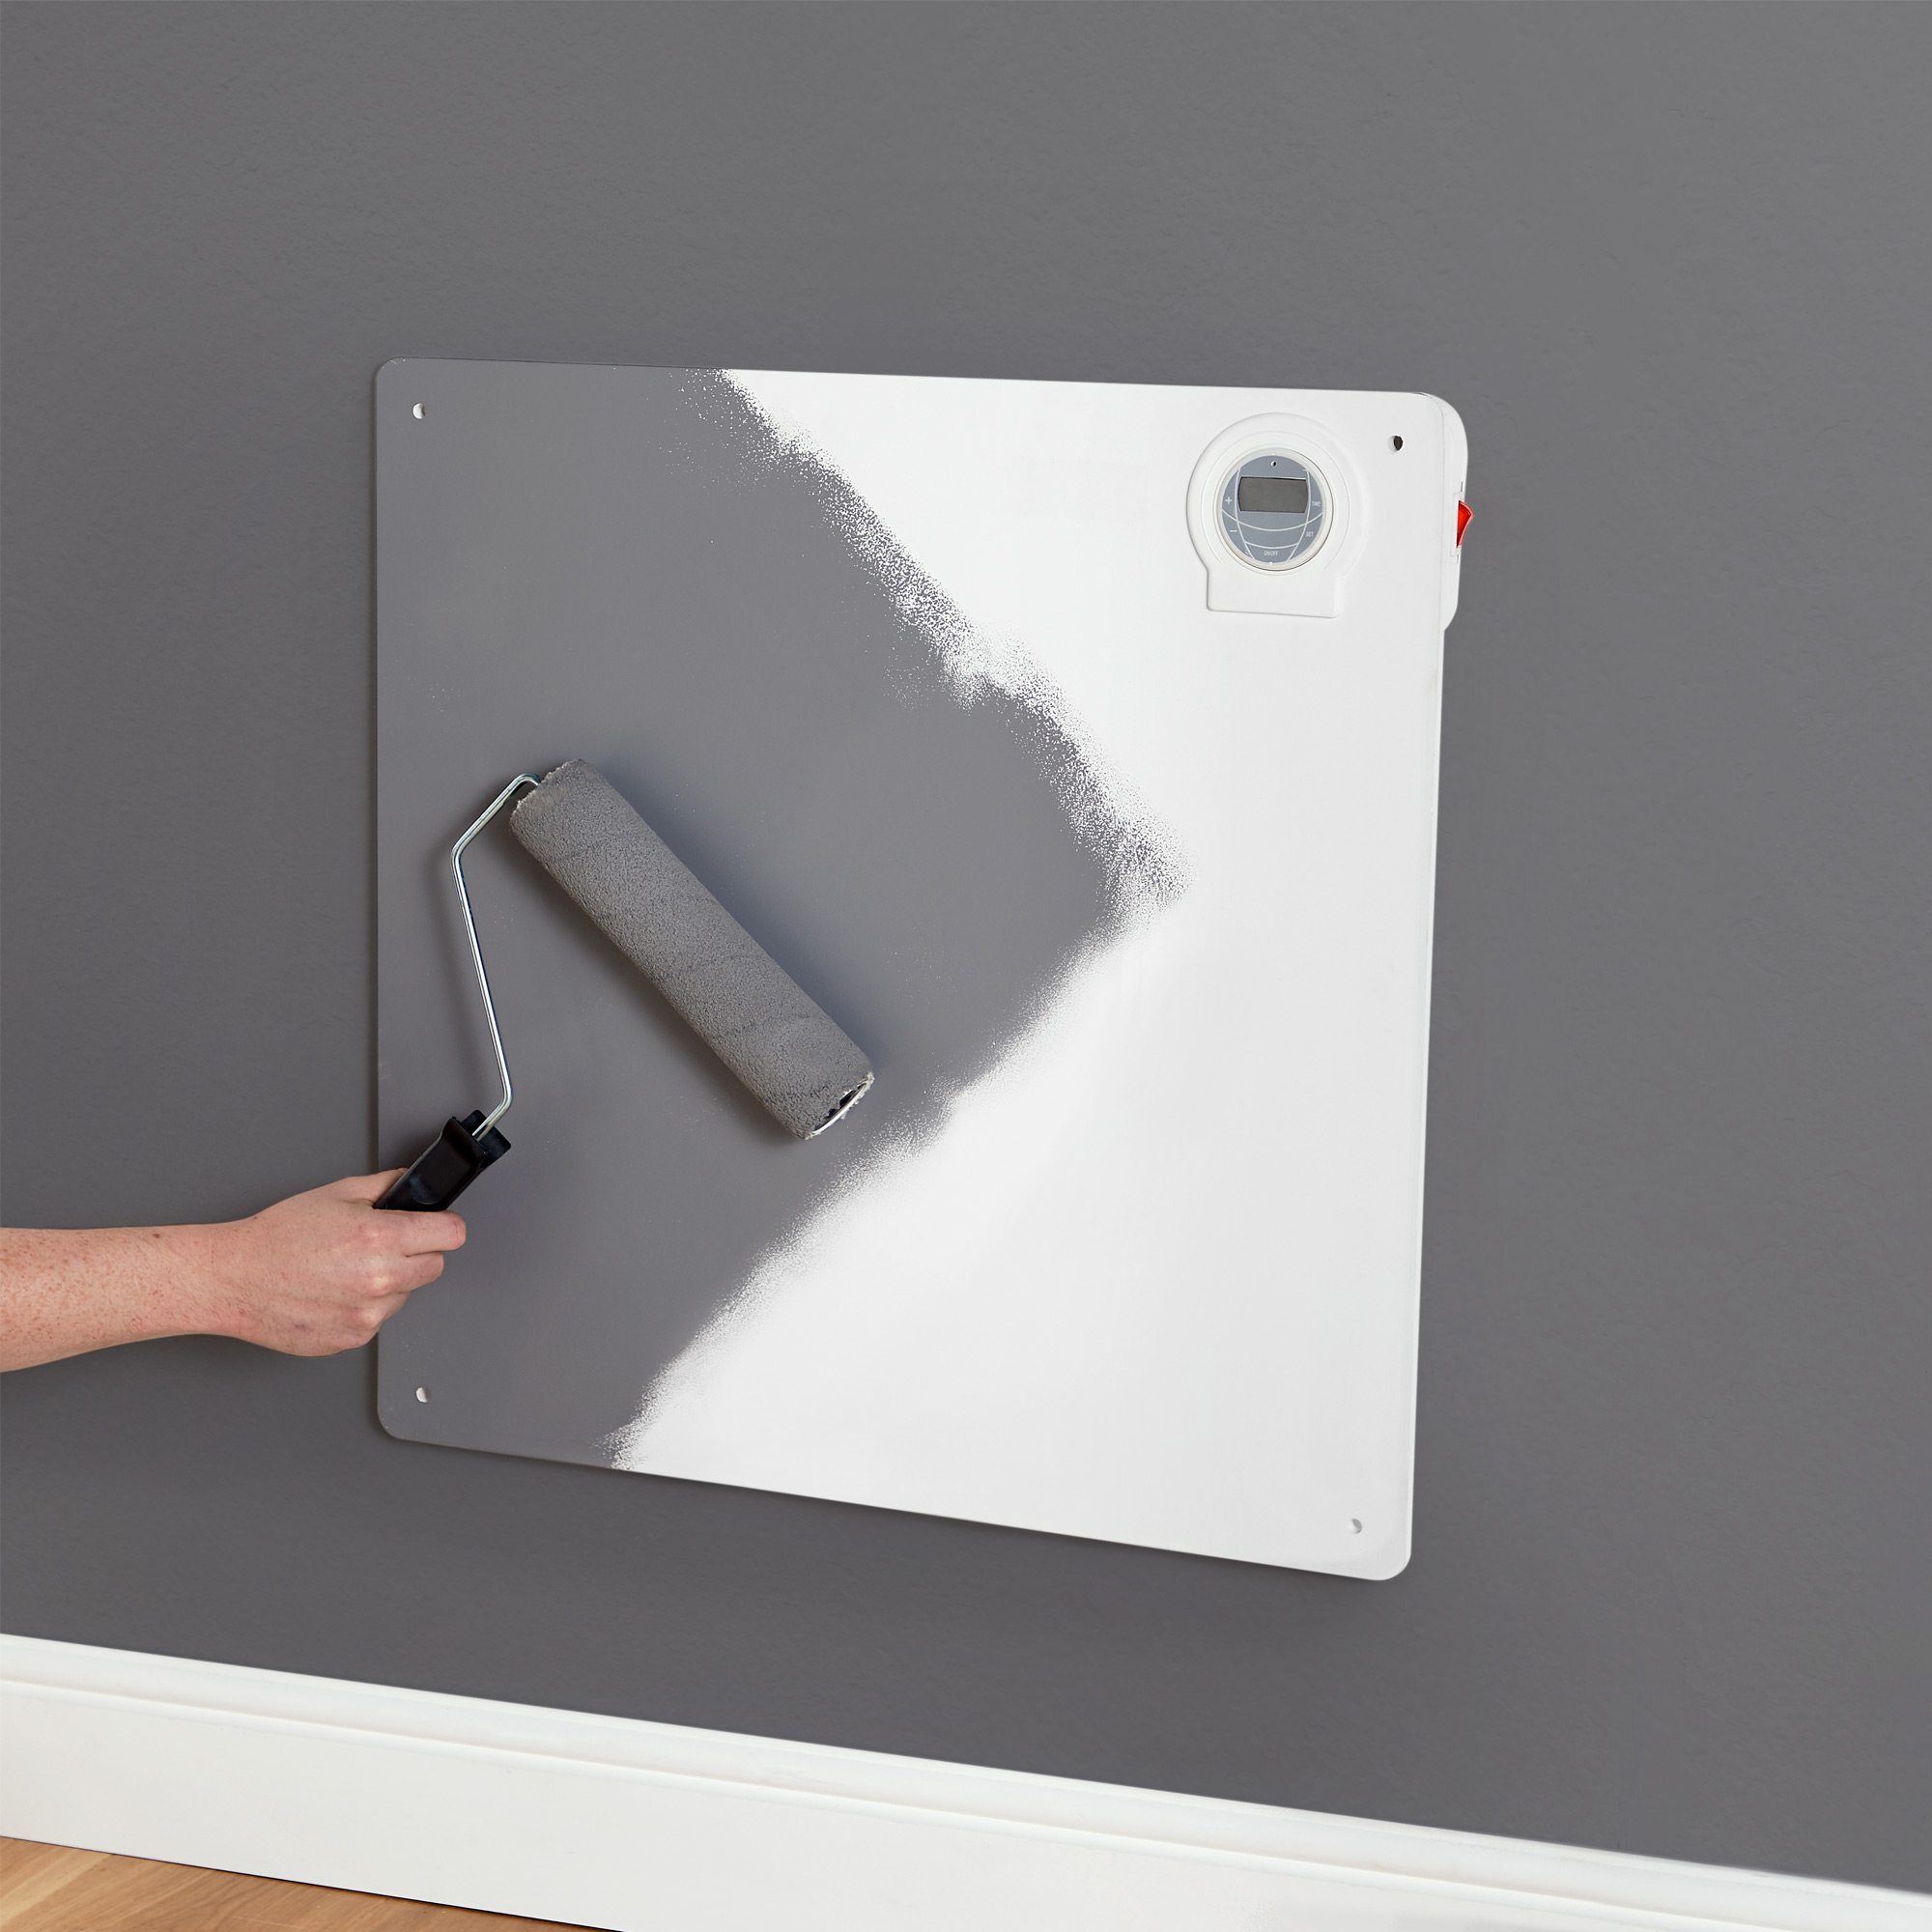 Vonhaus Electric Panel Heater Freestanding Wall Mounted Timer Amp Thermostat Ebay